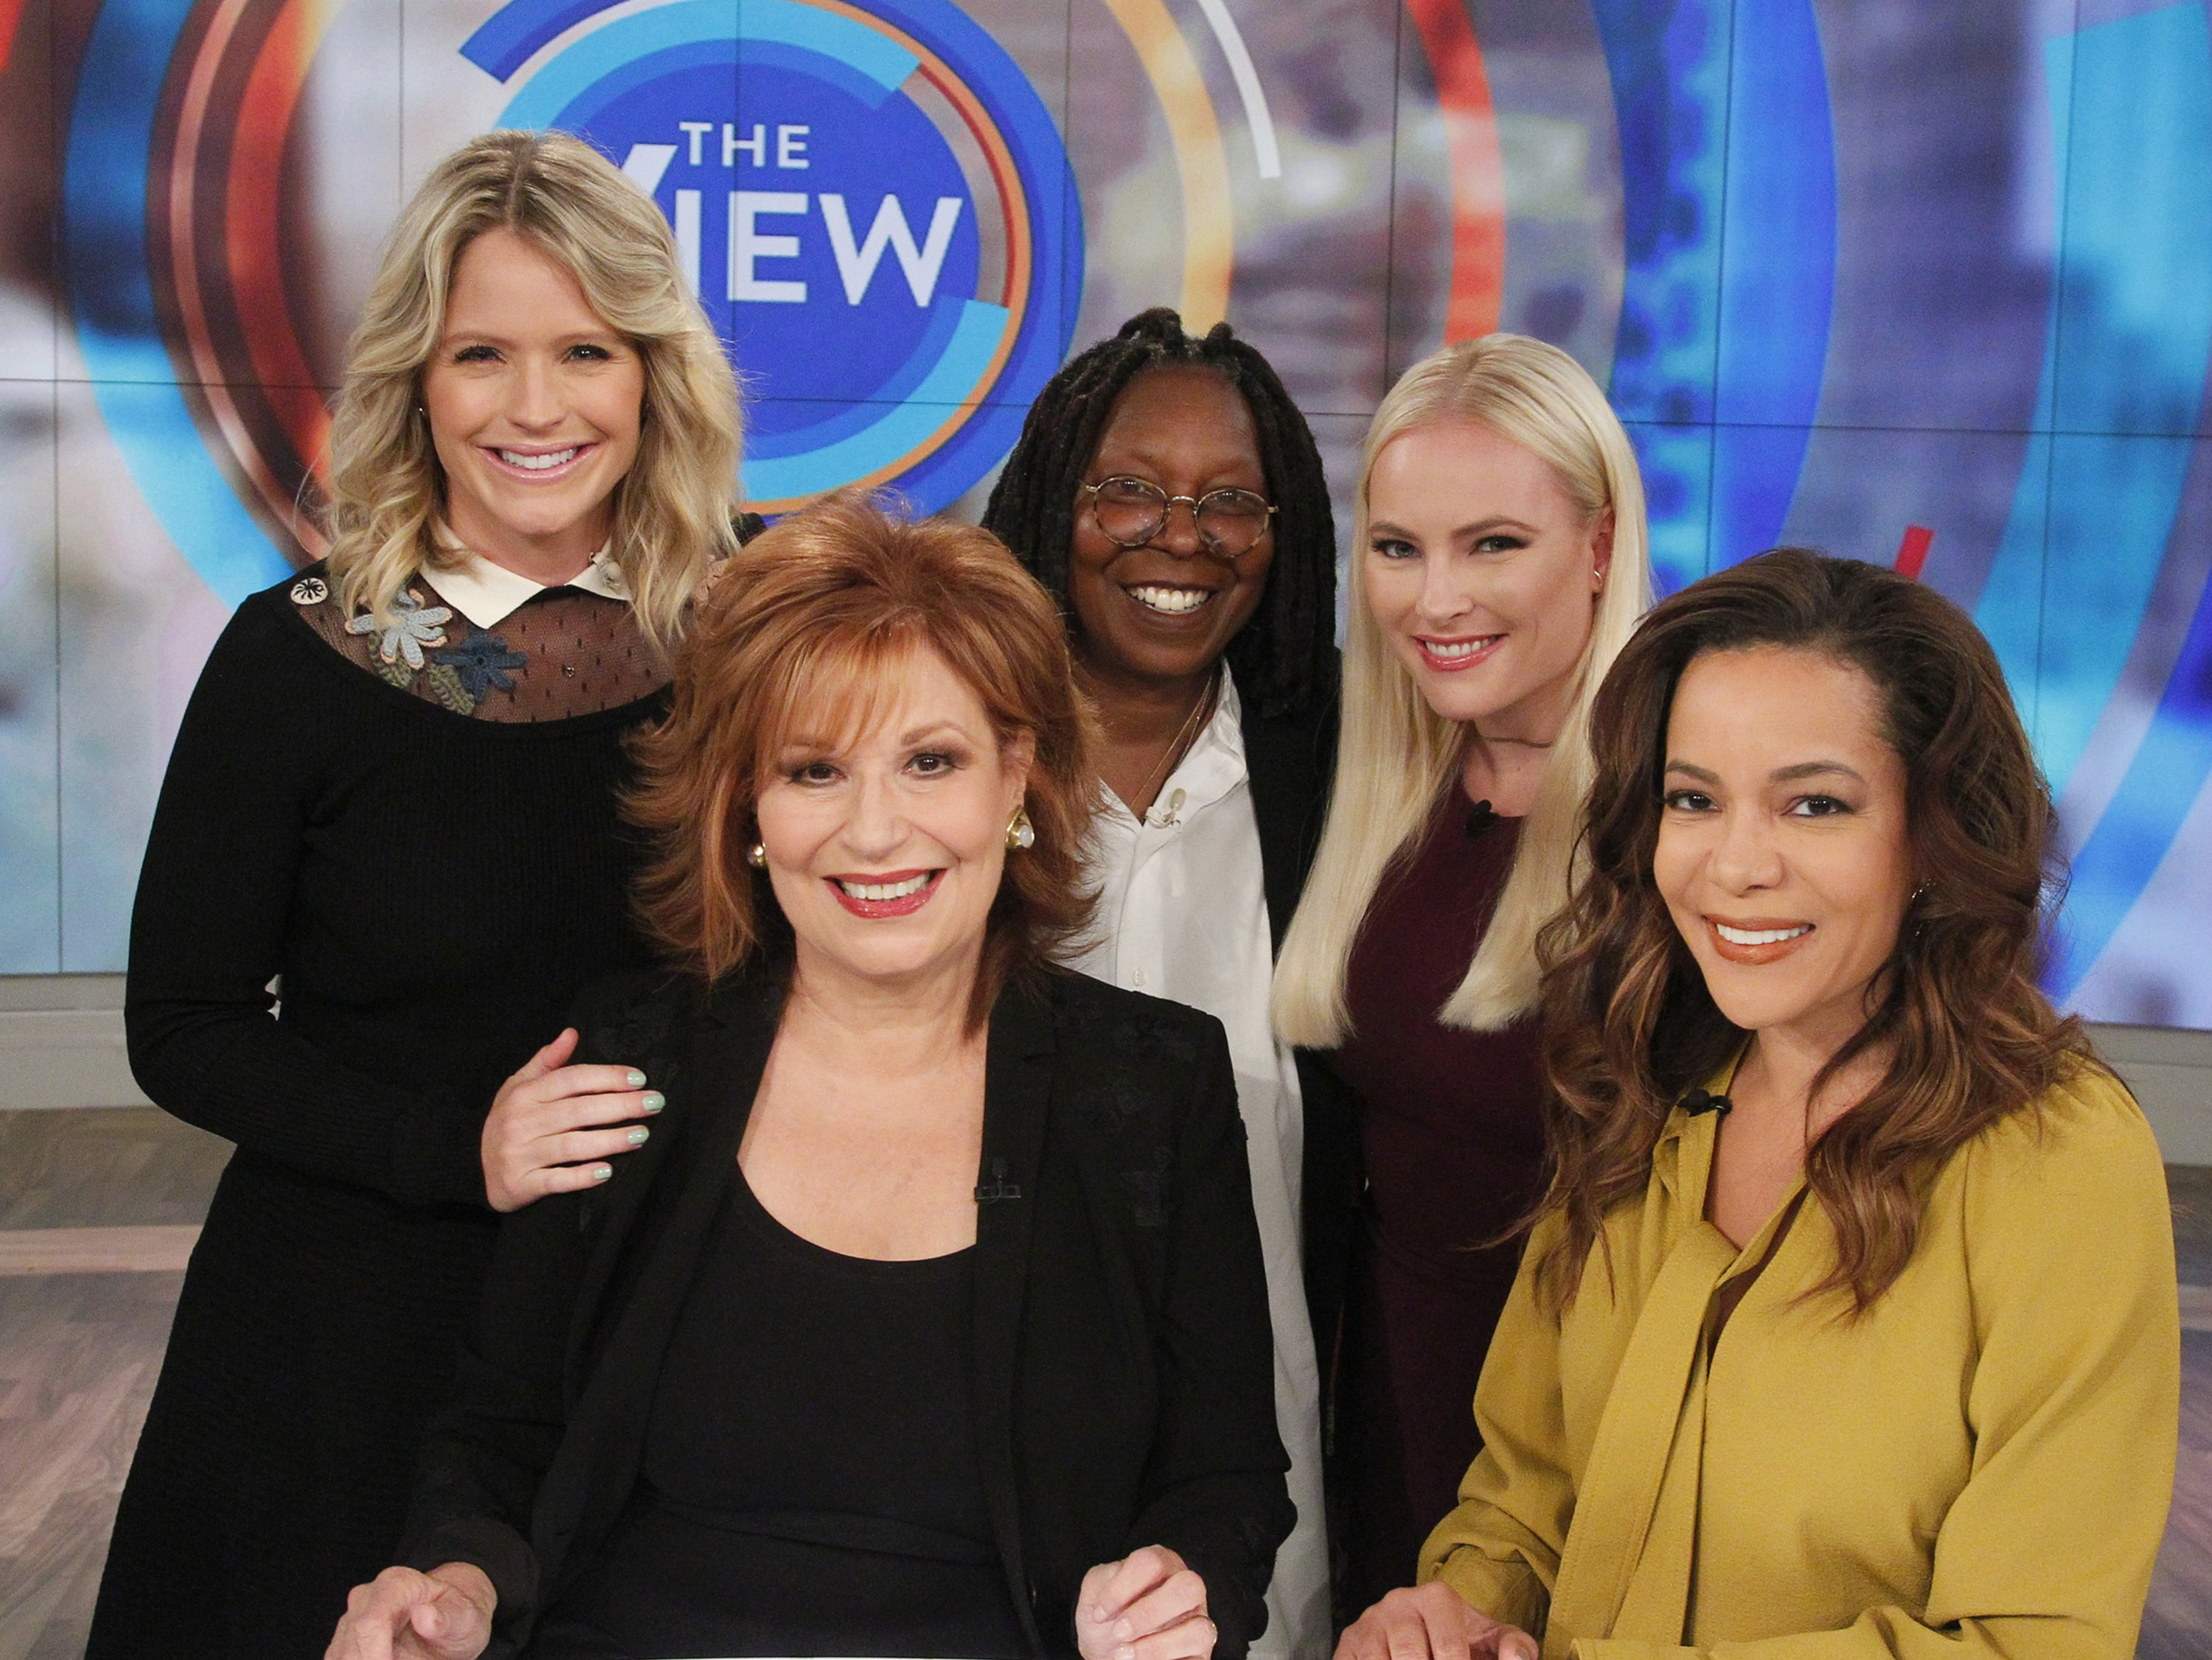 """The View"" hosts Sara Haines, Joy Behar, Whoopi Goldberg, Meghan McCain, and Sunny Hostin on set 